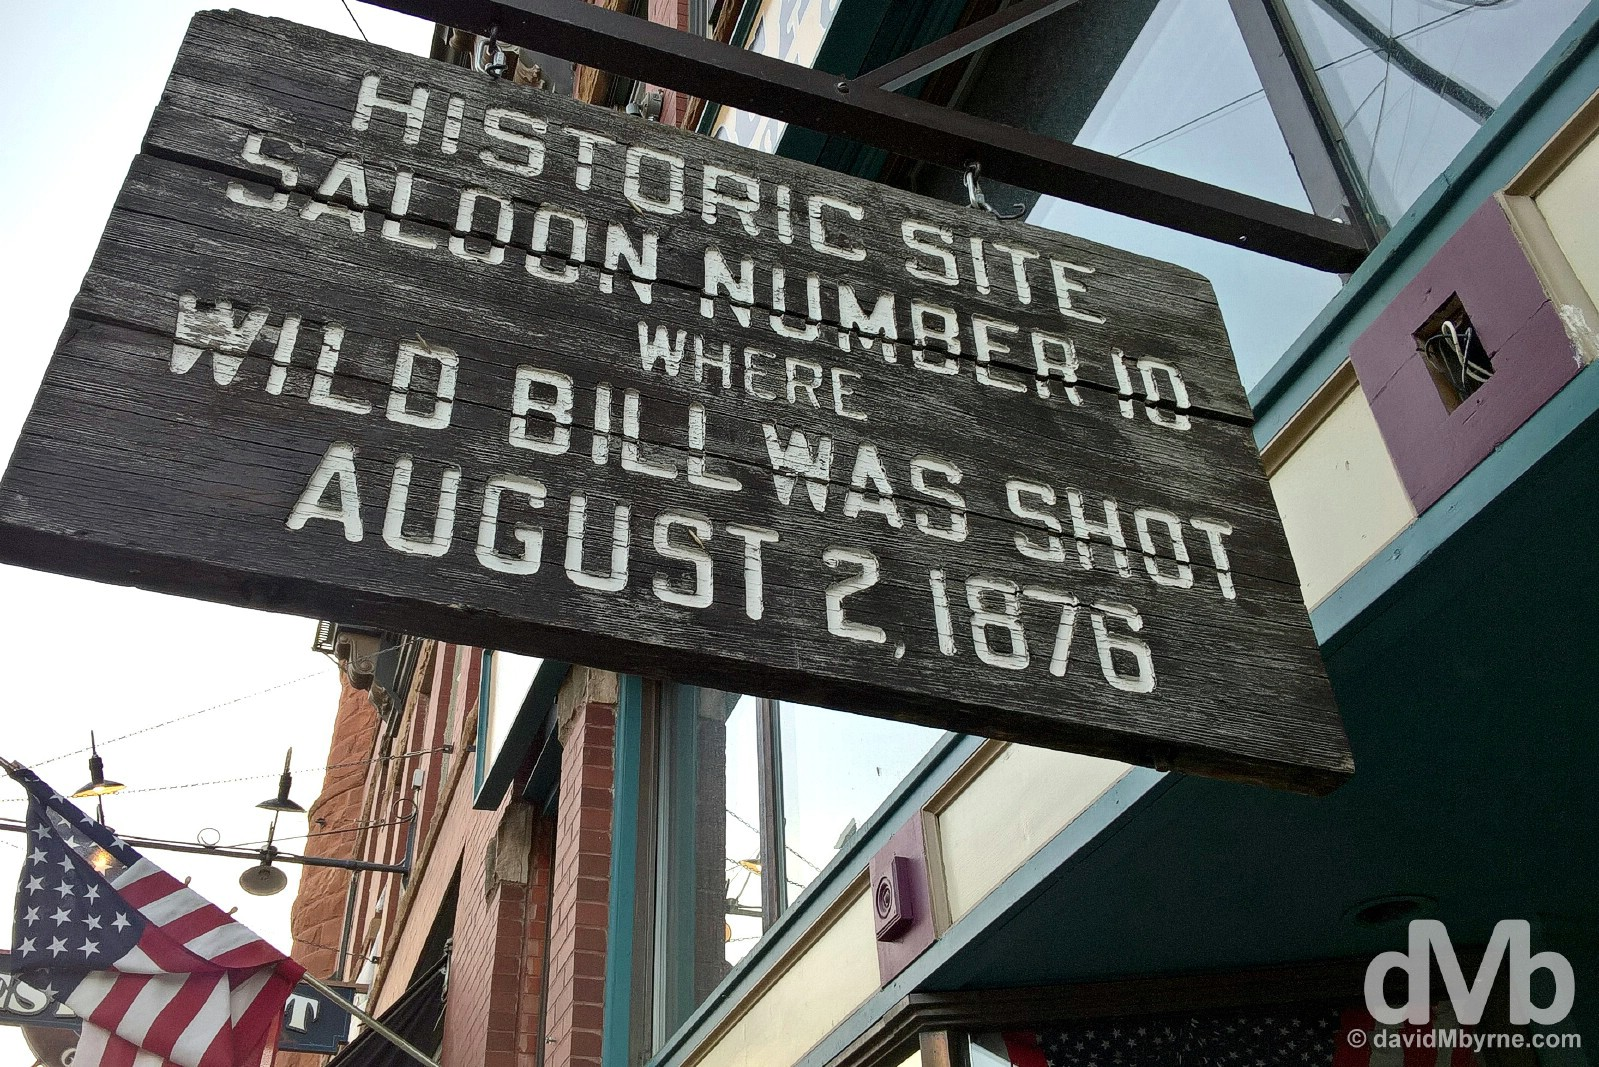 Saloon Number 10, Historic Main Street Deadwood, Black Hills, South Dakota, USA. September 1, 2016.